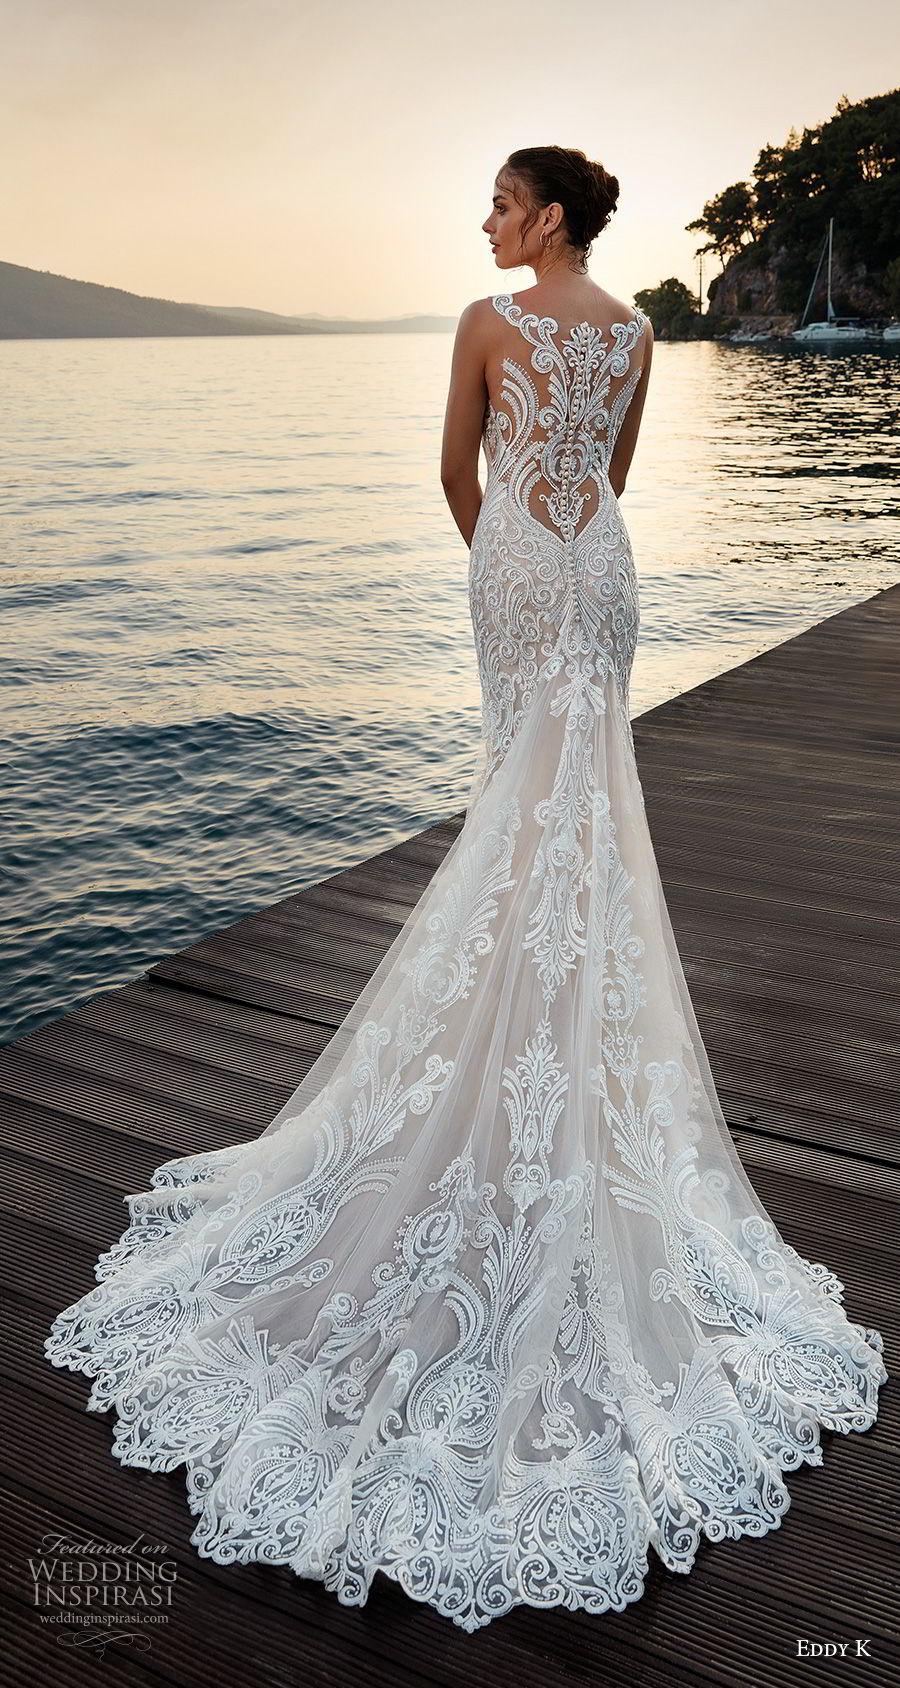 eddy k 2018 bridal sleeveless with strap v neck full embellishment elegant trumpet wedding dress sheer lace back chapel train (27) bv